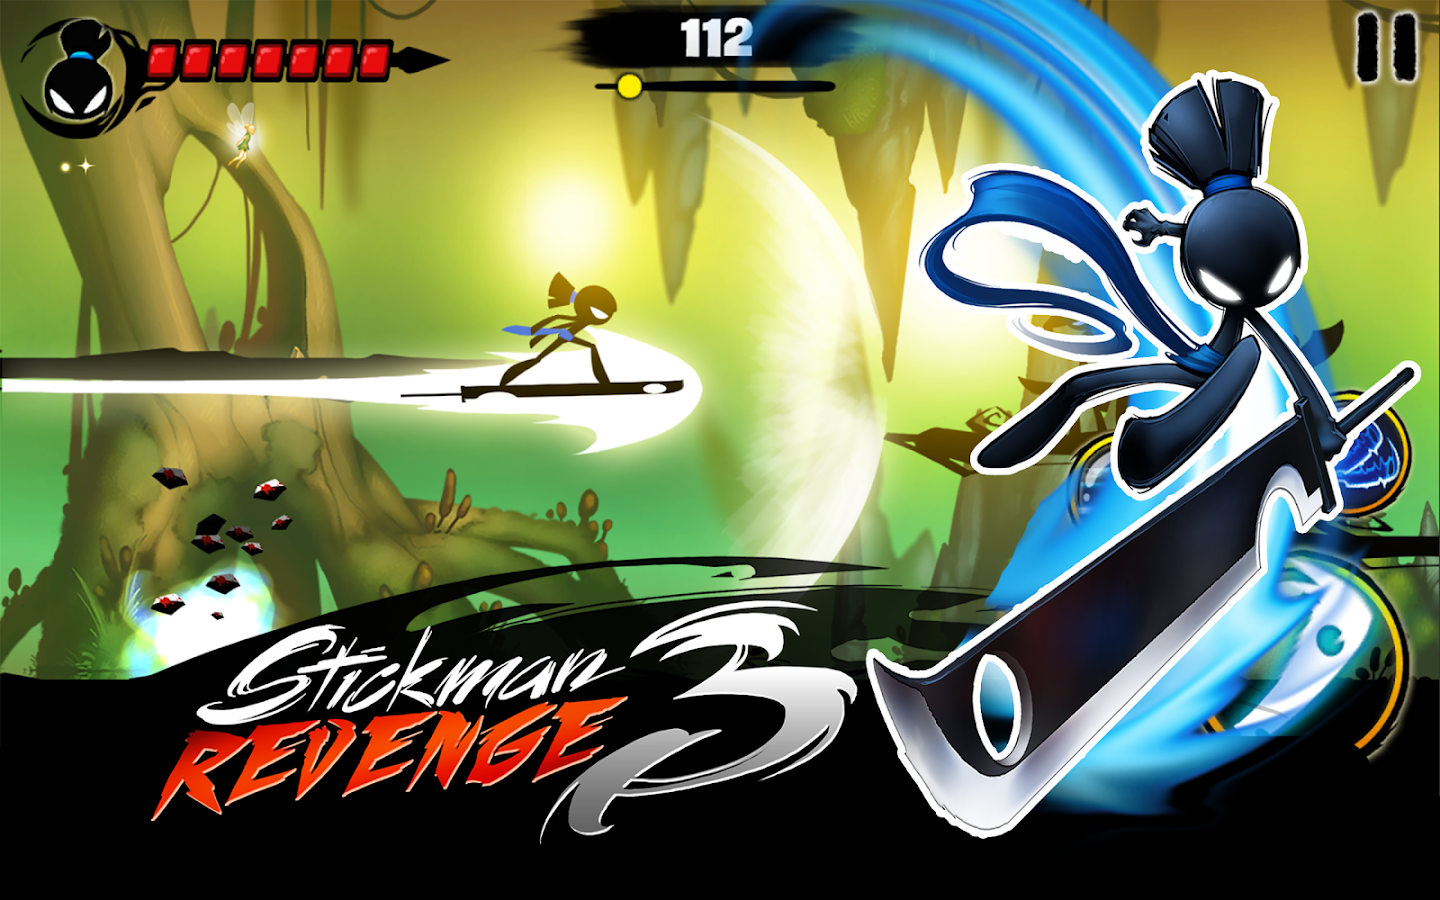 Stickman Revenge 3 Screenshot 11